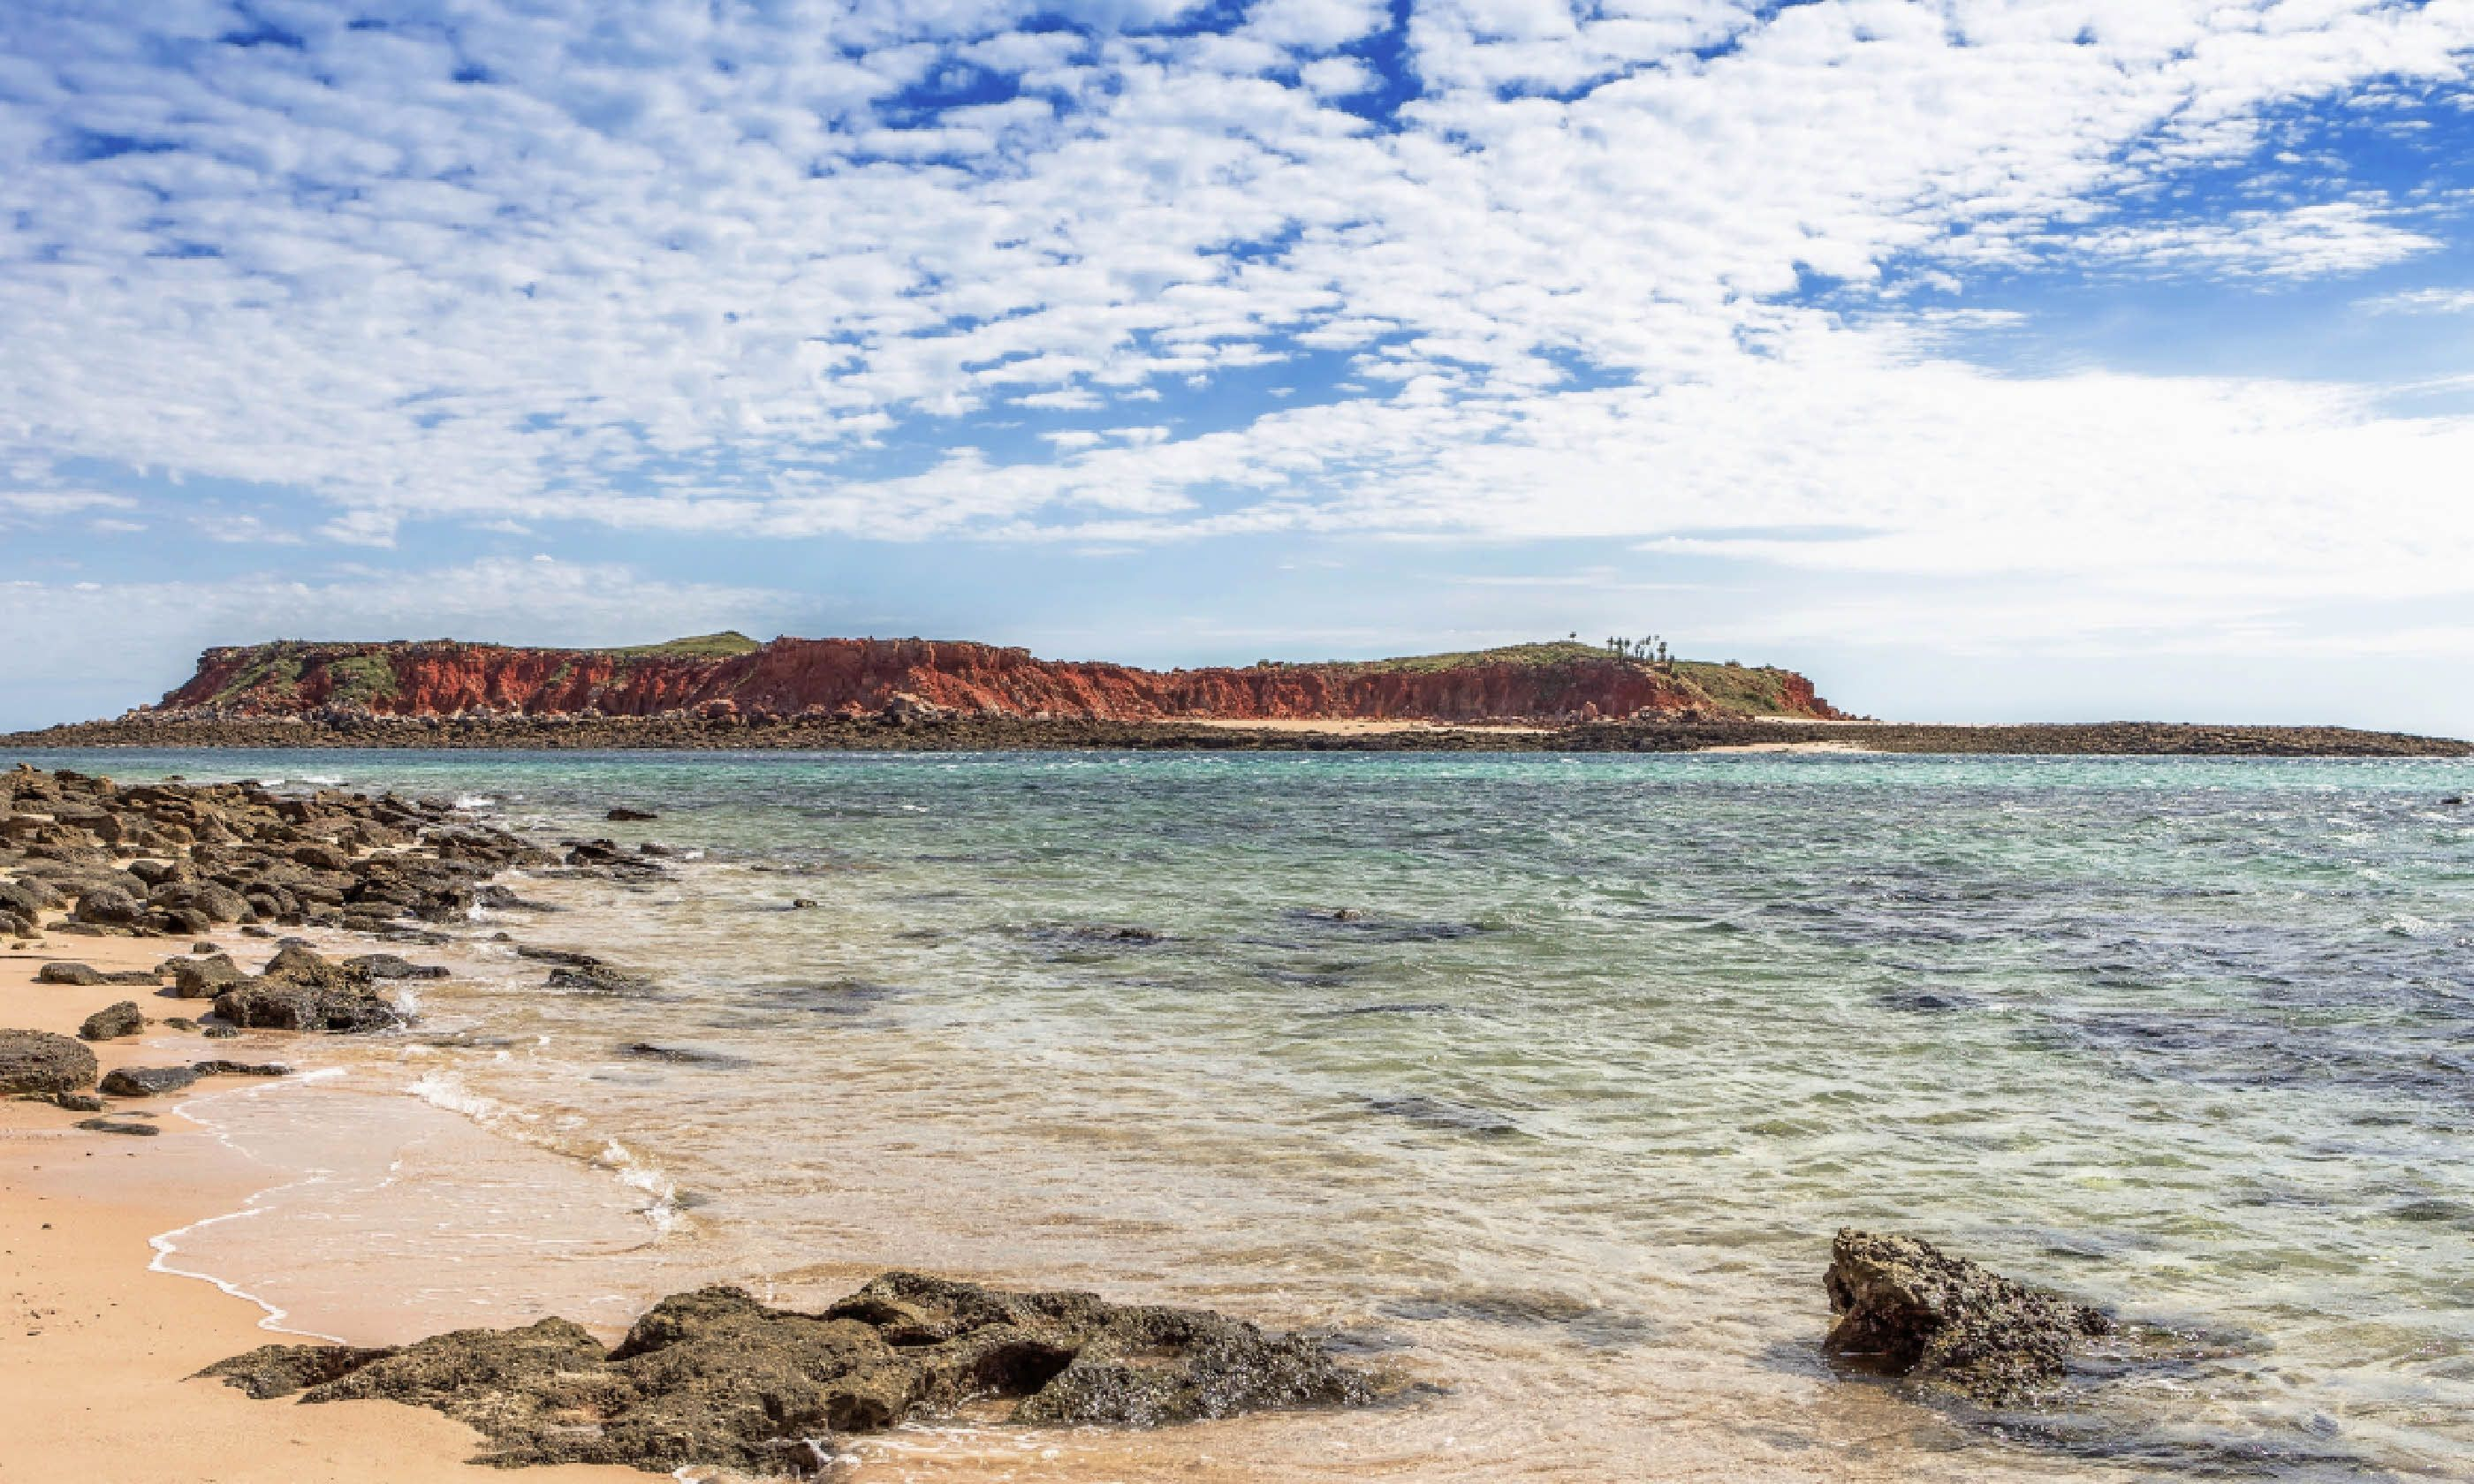 Cape Laveque in the Kimberley region of Western Australia (Shutterstock)